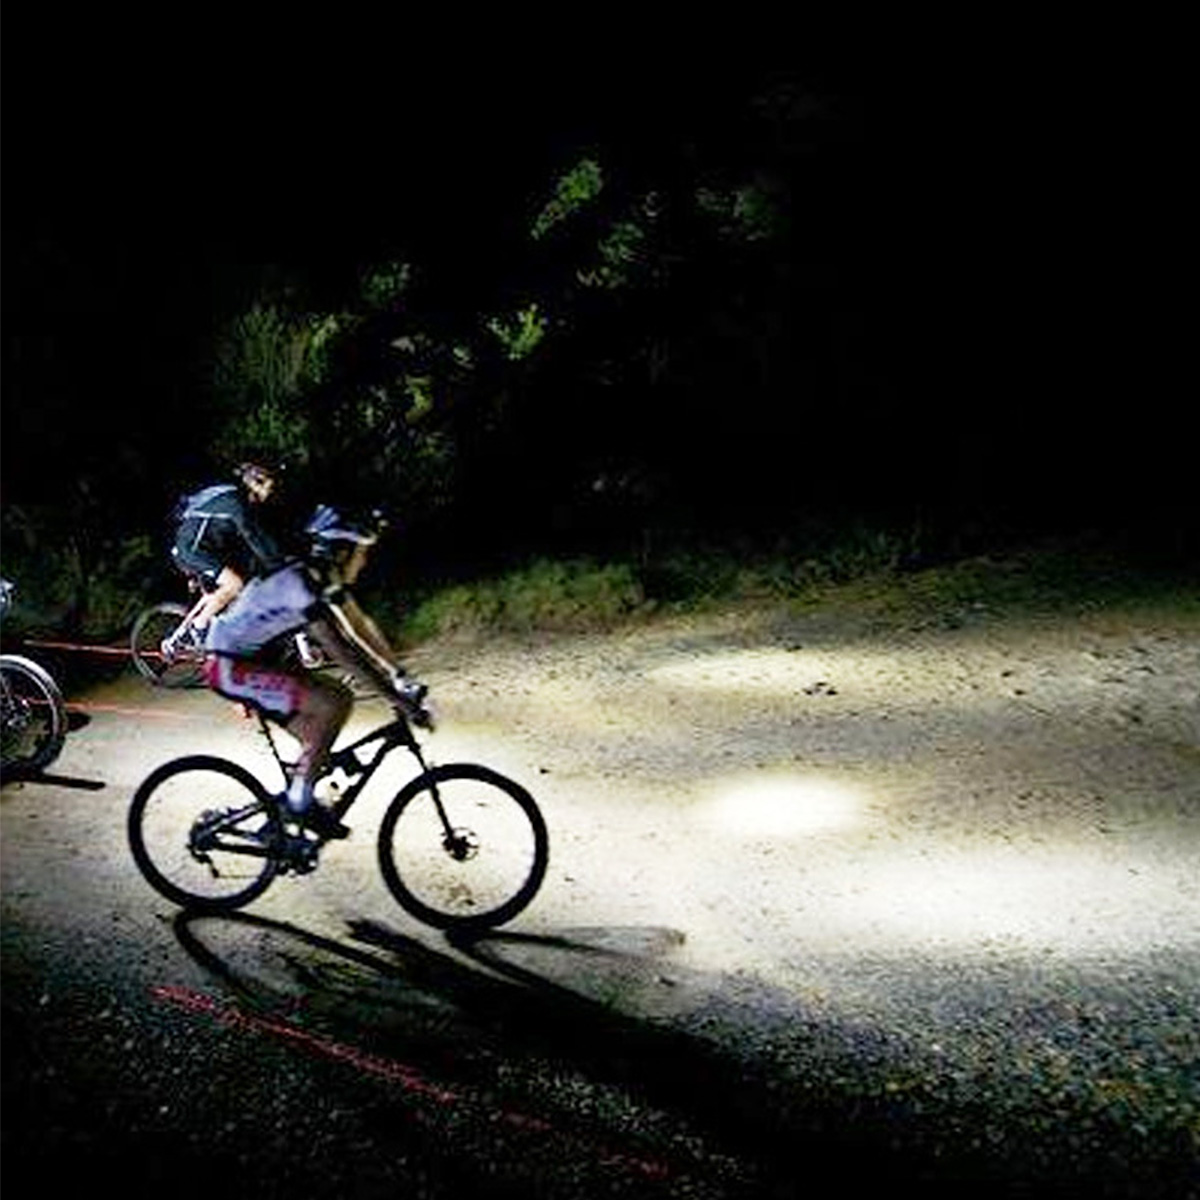 GEUNTECH LED Bicycle Light Speedometer Waterproof LCD Display Bike Night Riding Bicycle Odometer USB Rechargeable Bicycle Headlight Light Set